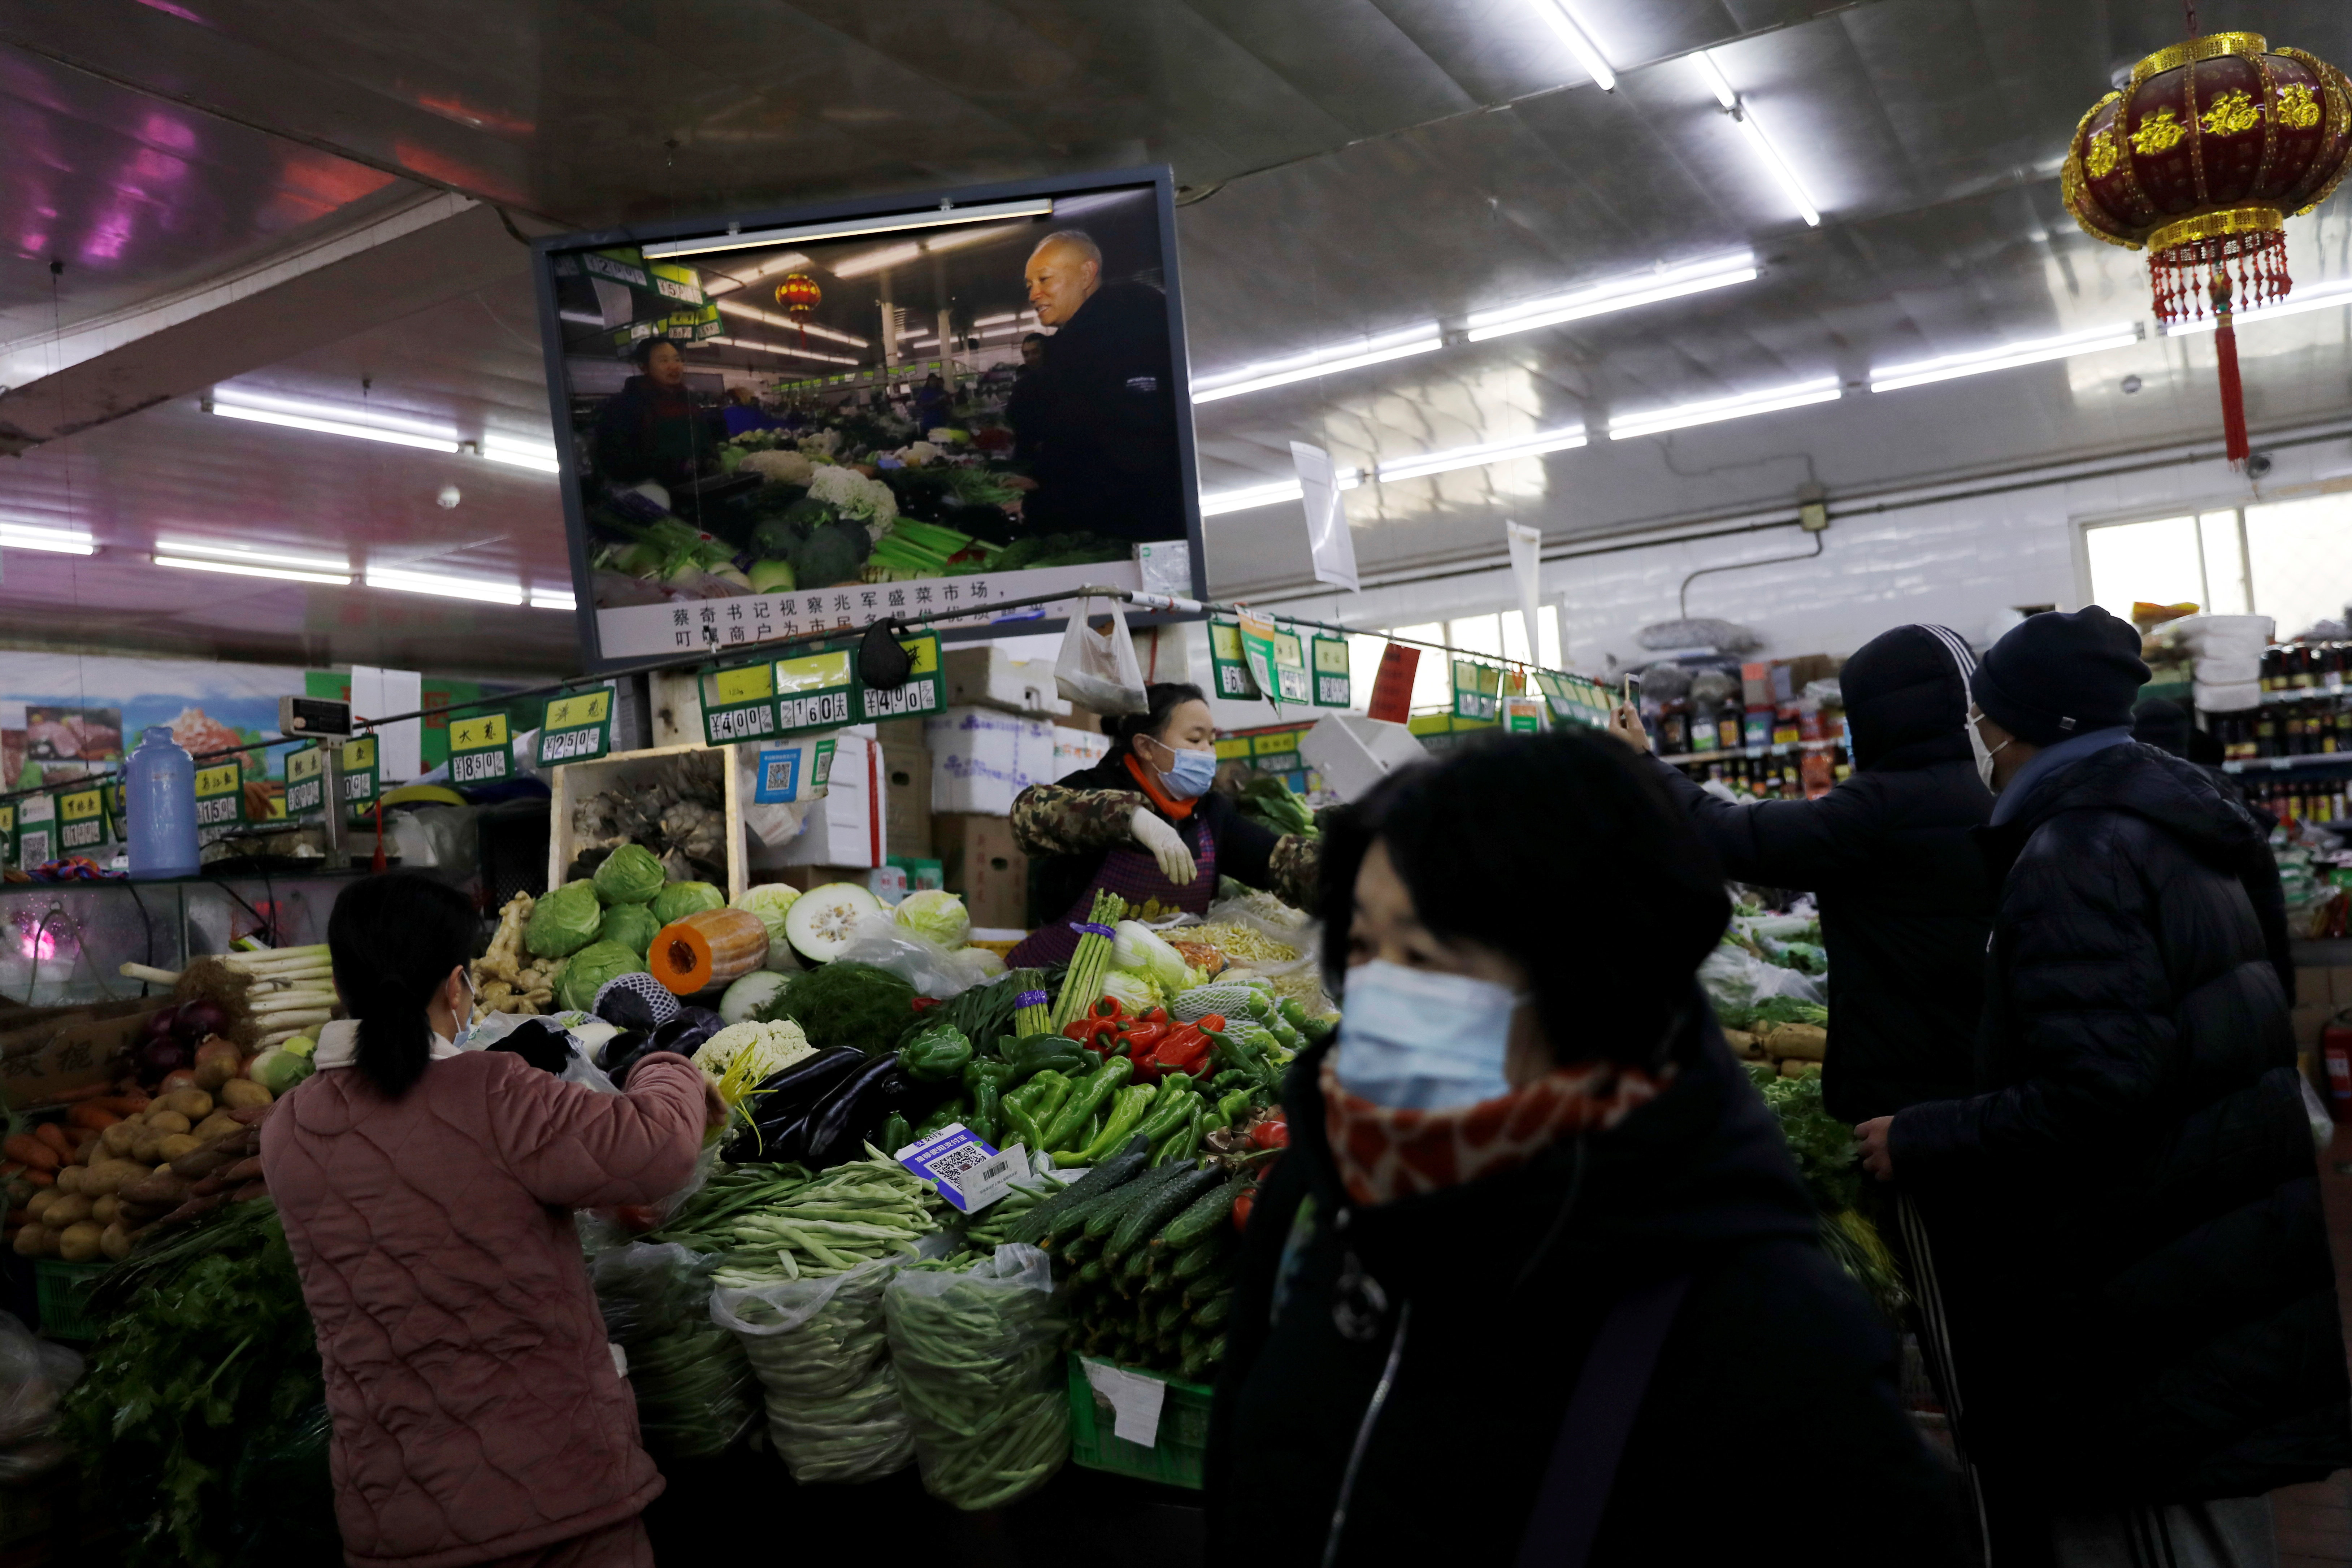 People wearing face masks following the coronavirus disease (COVID-19) outbreak shop for vegetables at a market in Beijing, China January 15, 2021. REUTERS/Tingshu Wang